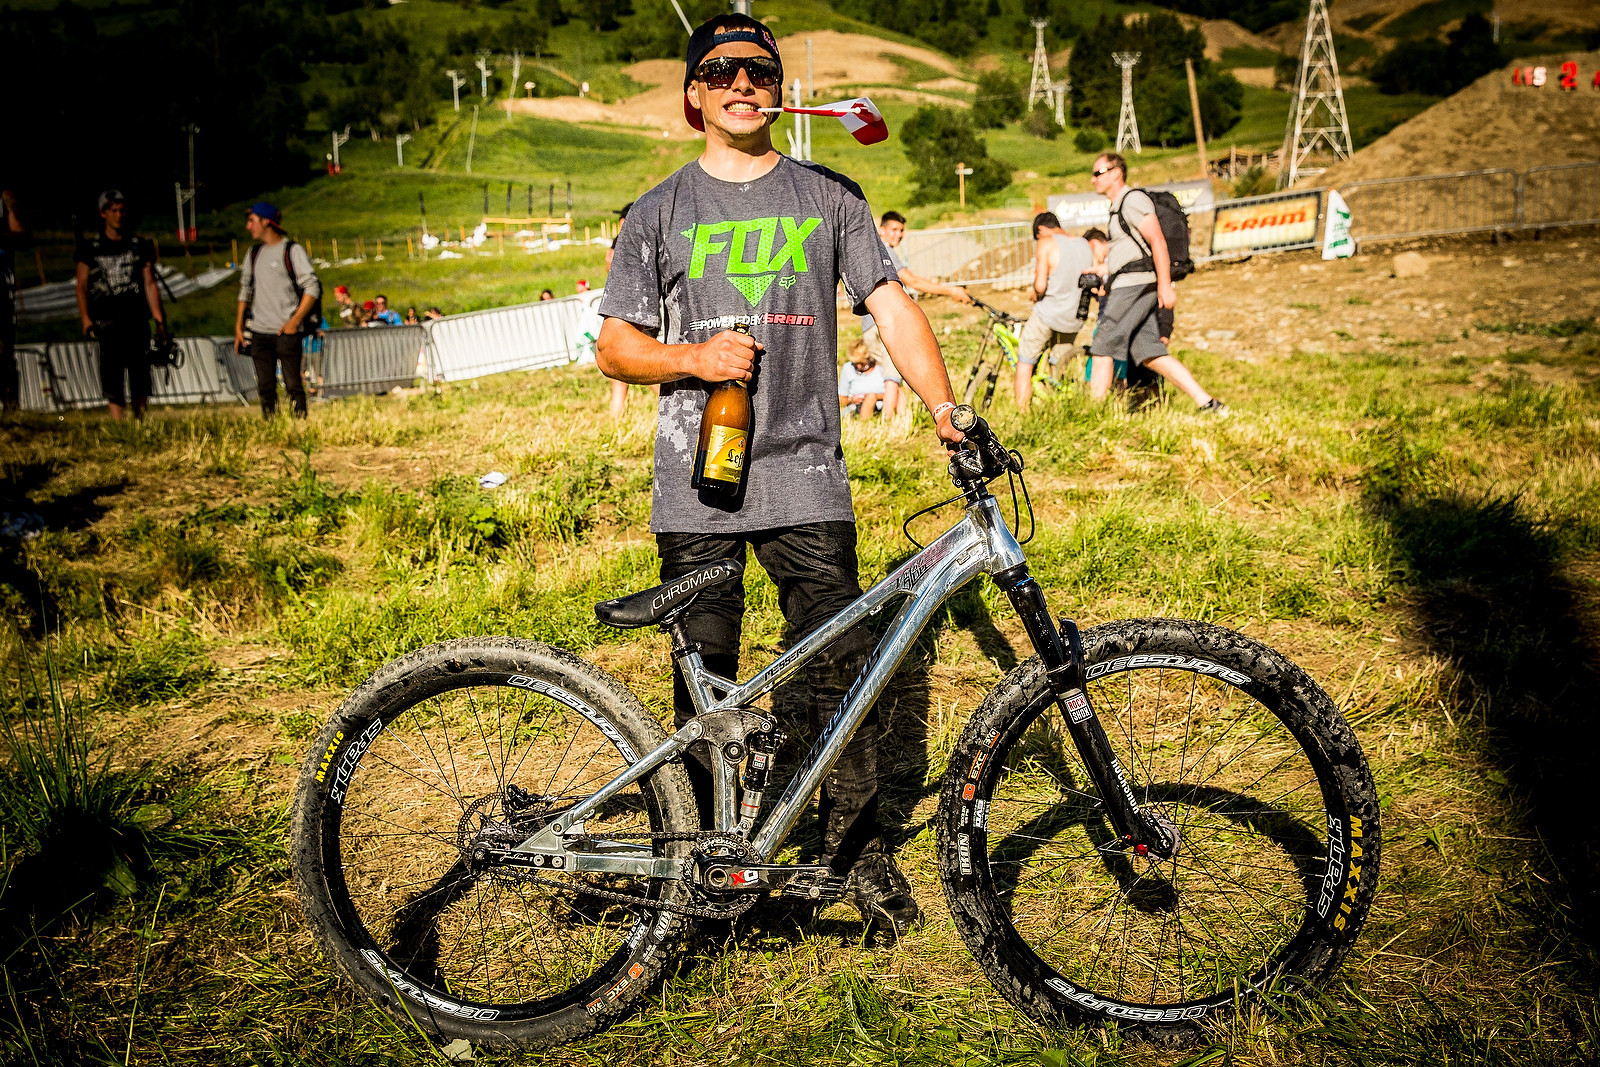 WINNING BIKE: Anthony Messere's Morpheus Vimana Slope - WINNING BIKE: Anthony Messere's Morpheus Vimana - Mountain Biking Pictures - Vital MTB